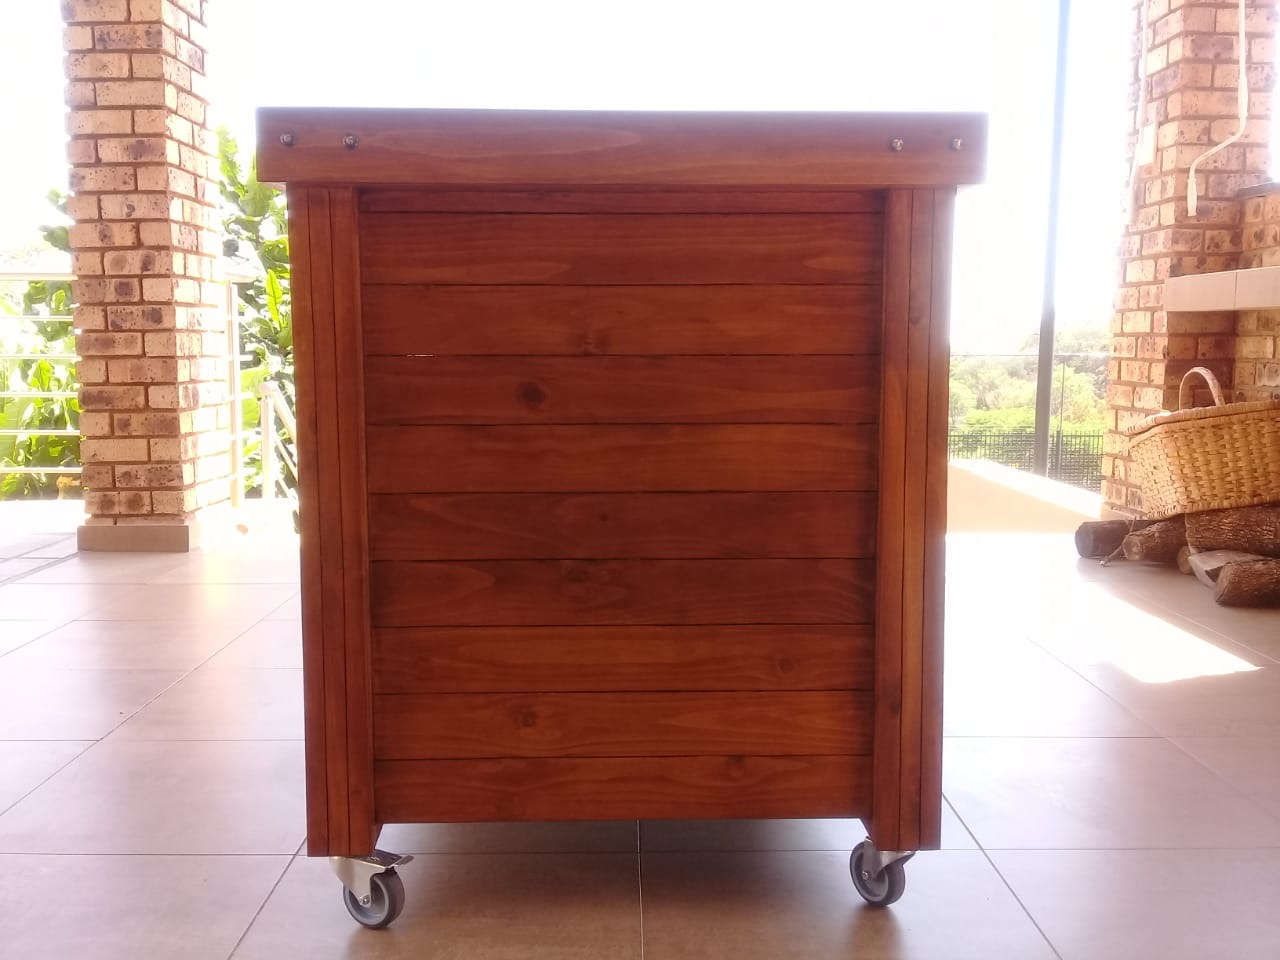 Braai trolley Farmhouse series 1200 Mobile - Stained